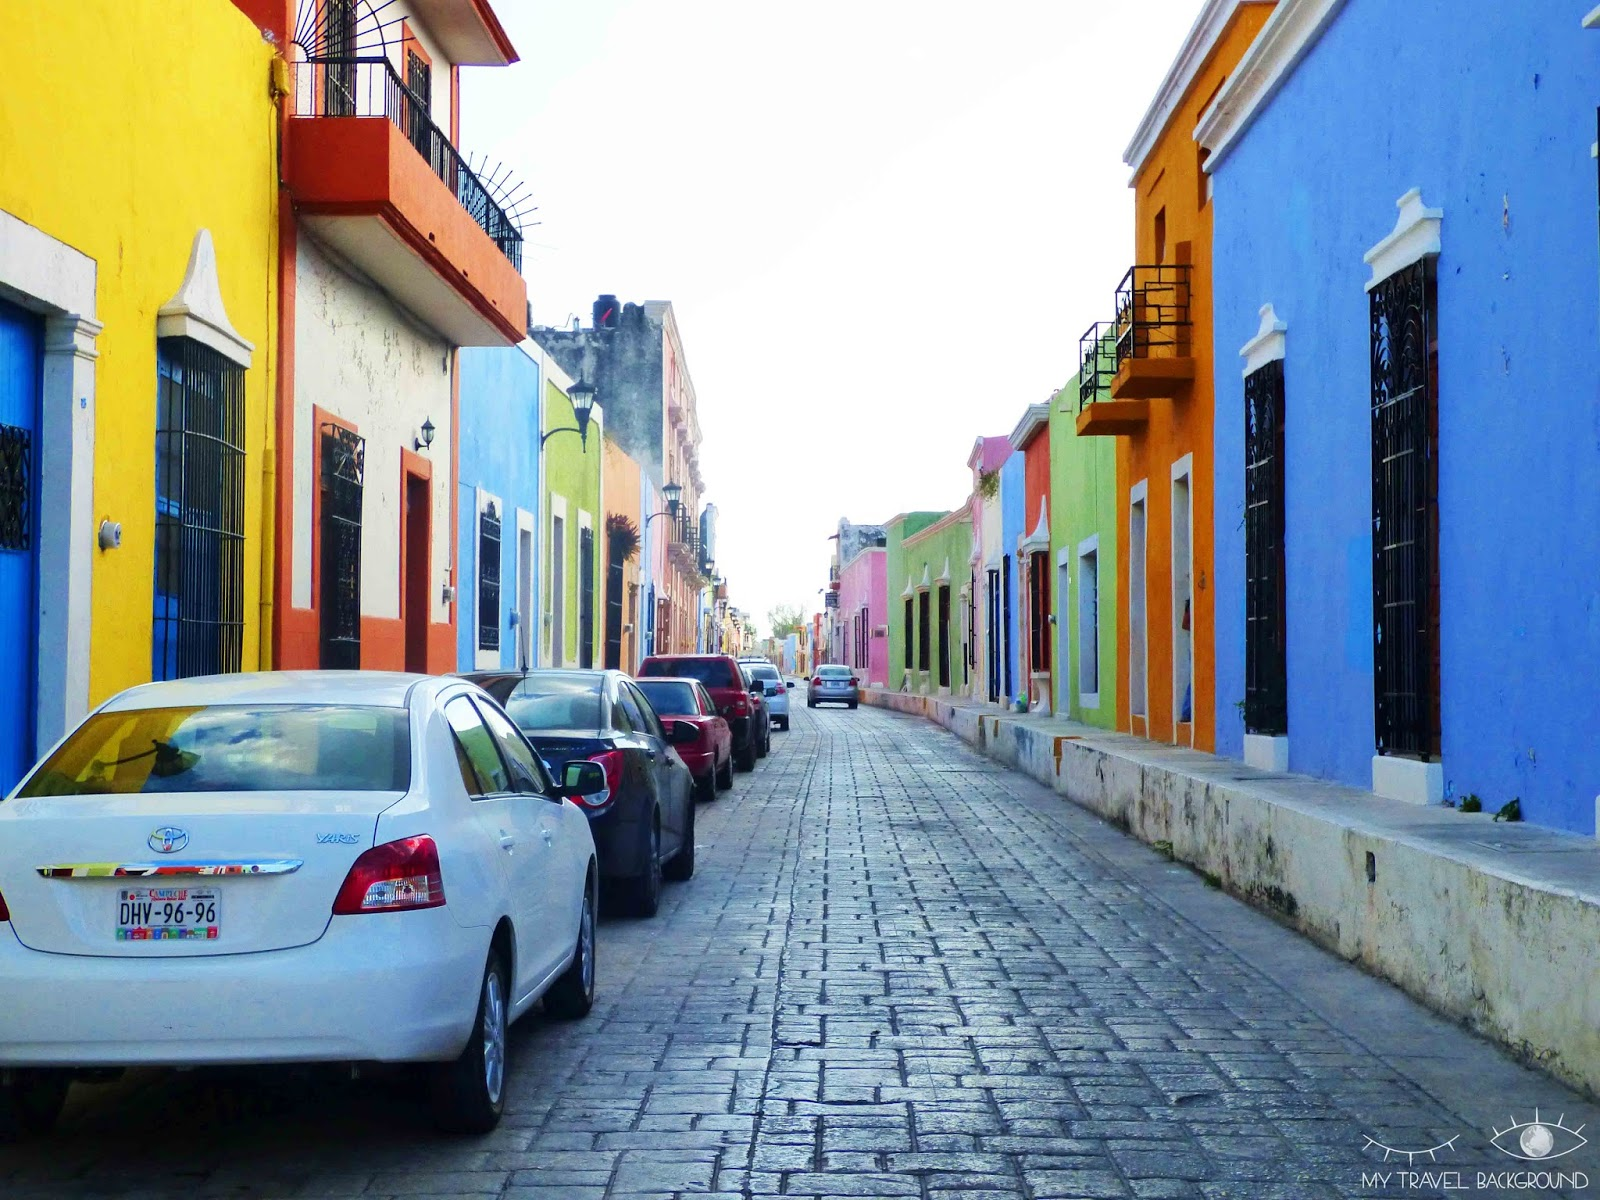 My Travel Background : 6 villes et villages découverts en 2016 - Campeche, Mexique